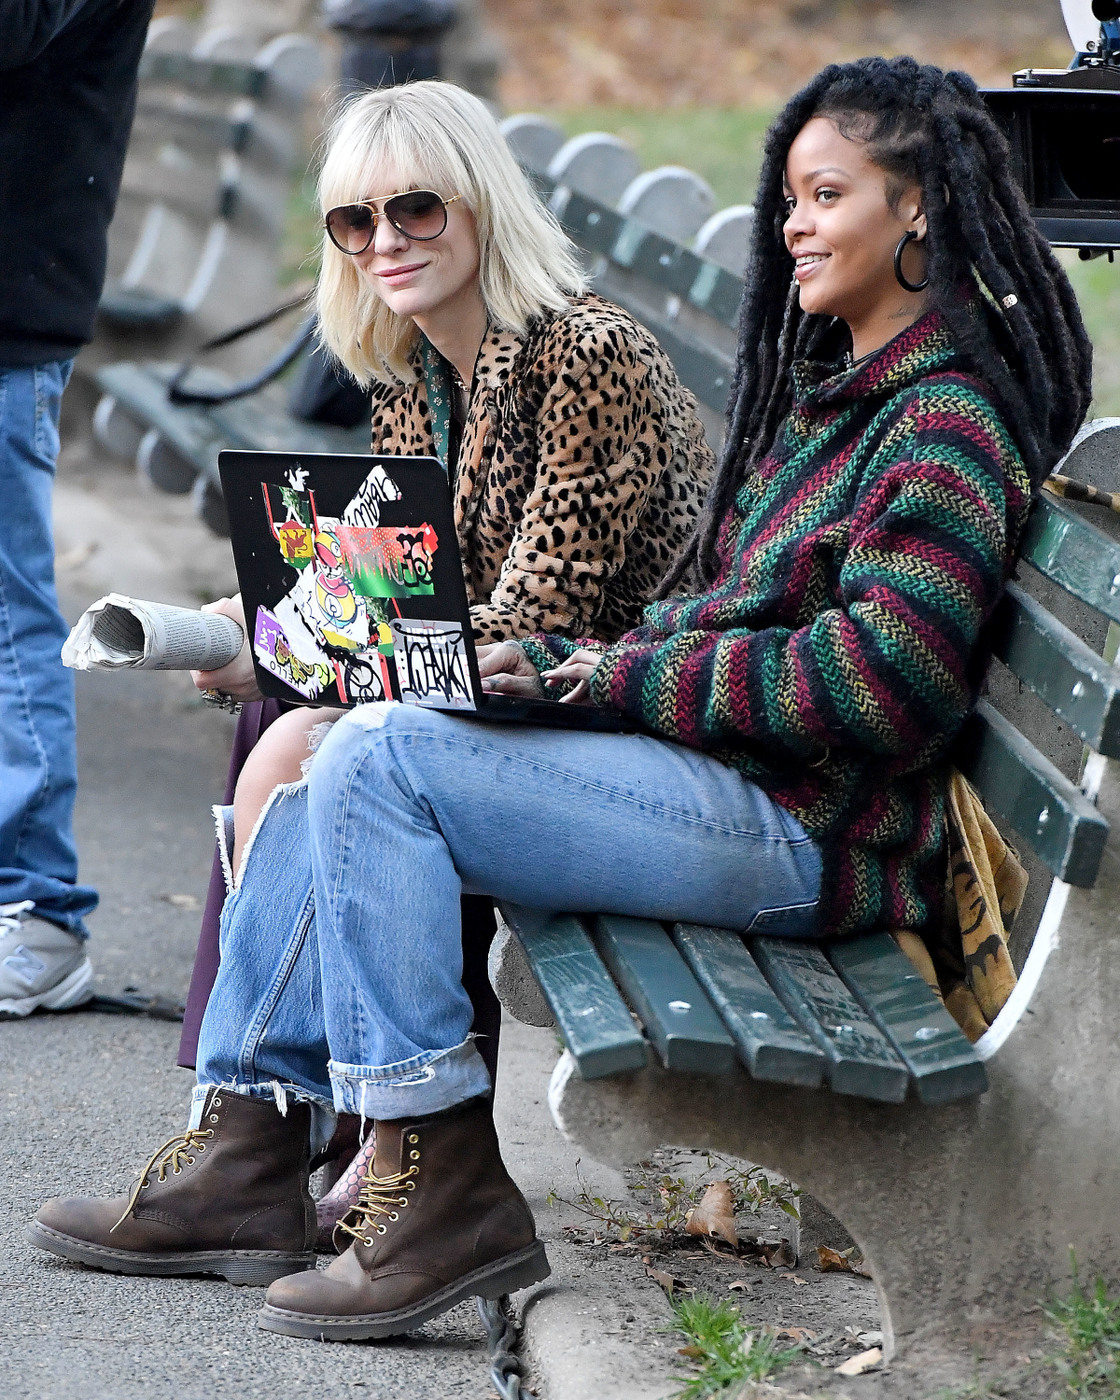 rihanna-and-cate-blanchett-sit-on-a-park-bench-in-central-park-during-filming-of-oceans-8-in-4.jpg